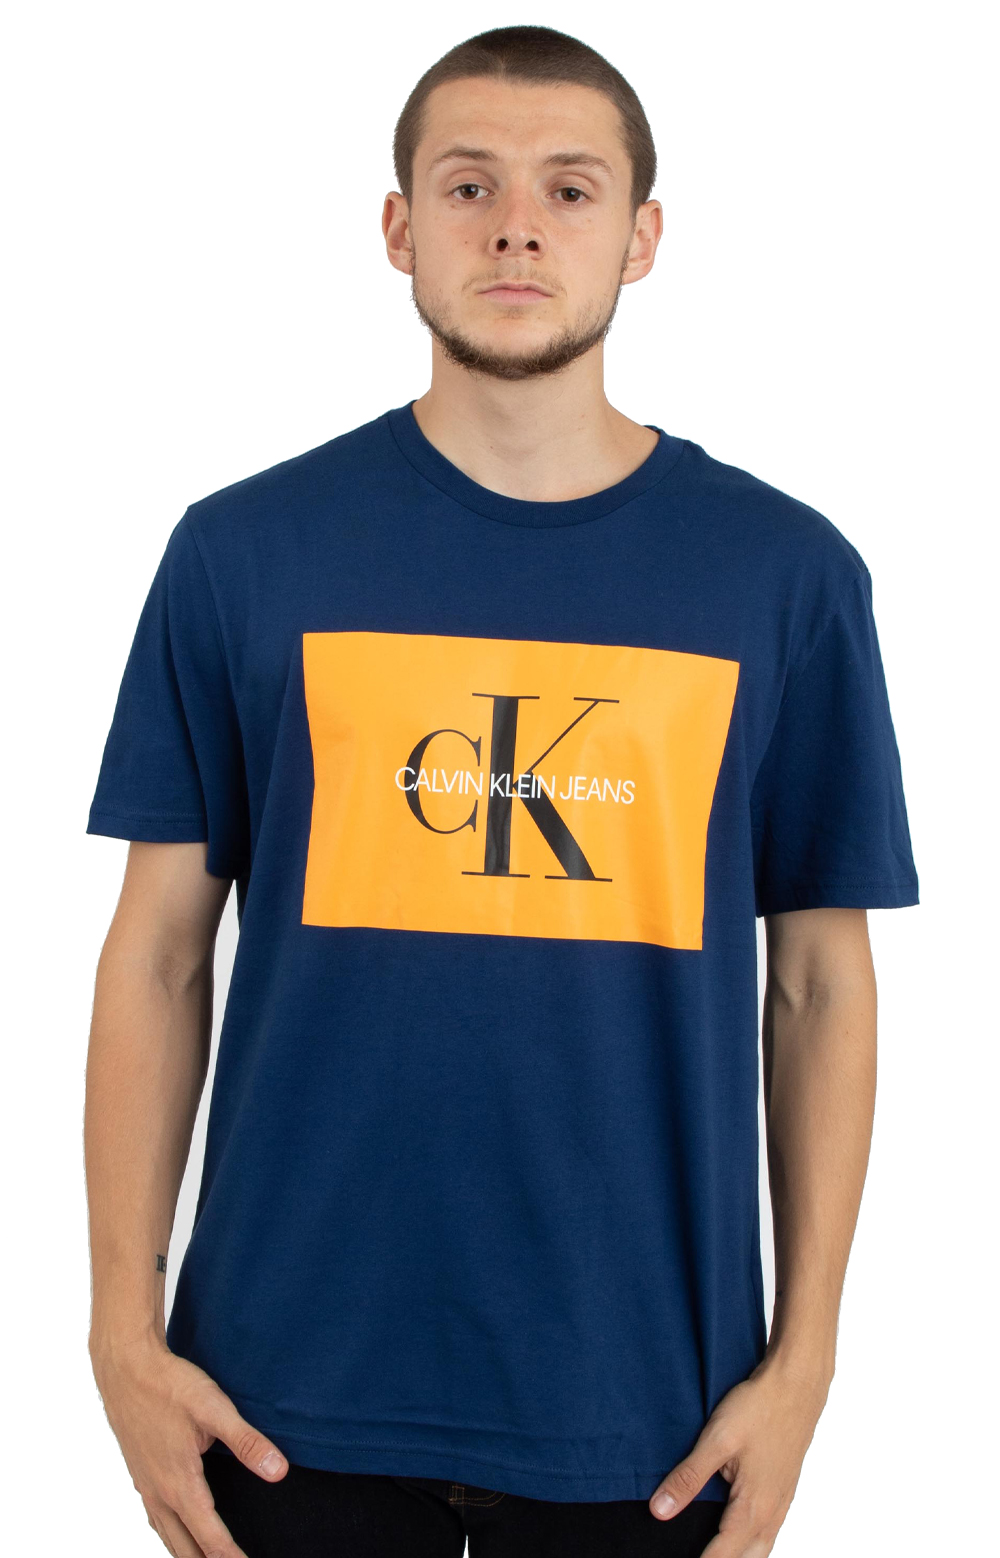 Calvin Klein, Monogram Logo T-Shirt - Night Rider